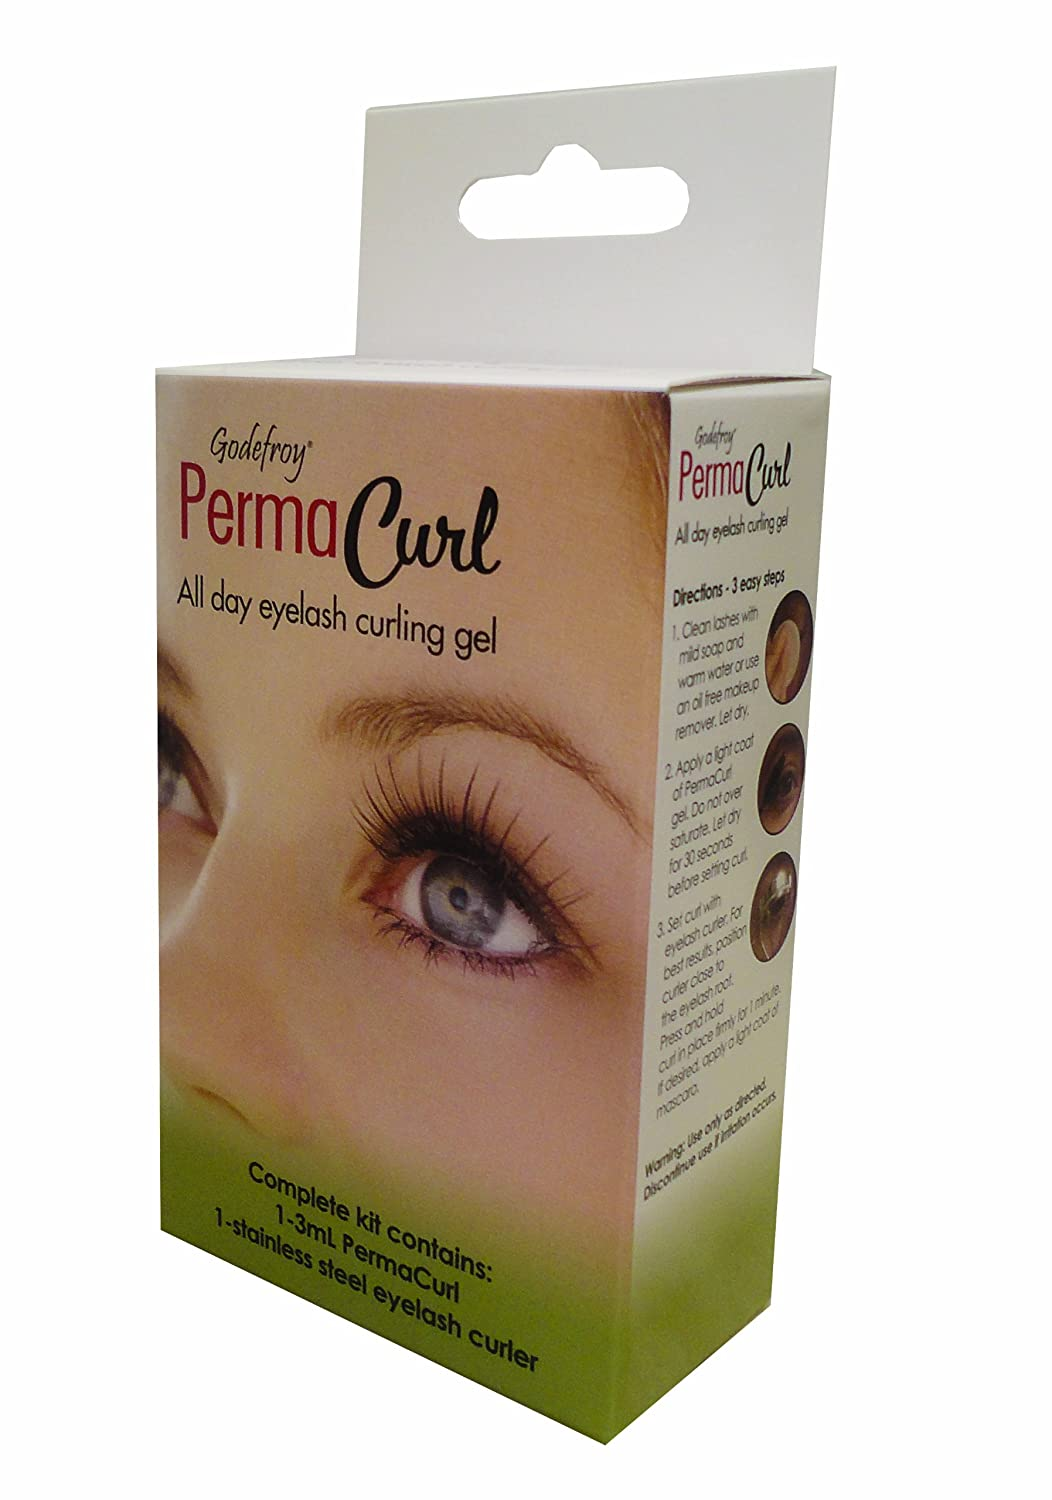 Amazon Godefroy 2 Piece Permacurl Kit All Day Eyelash Curling